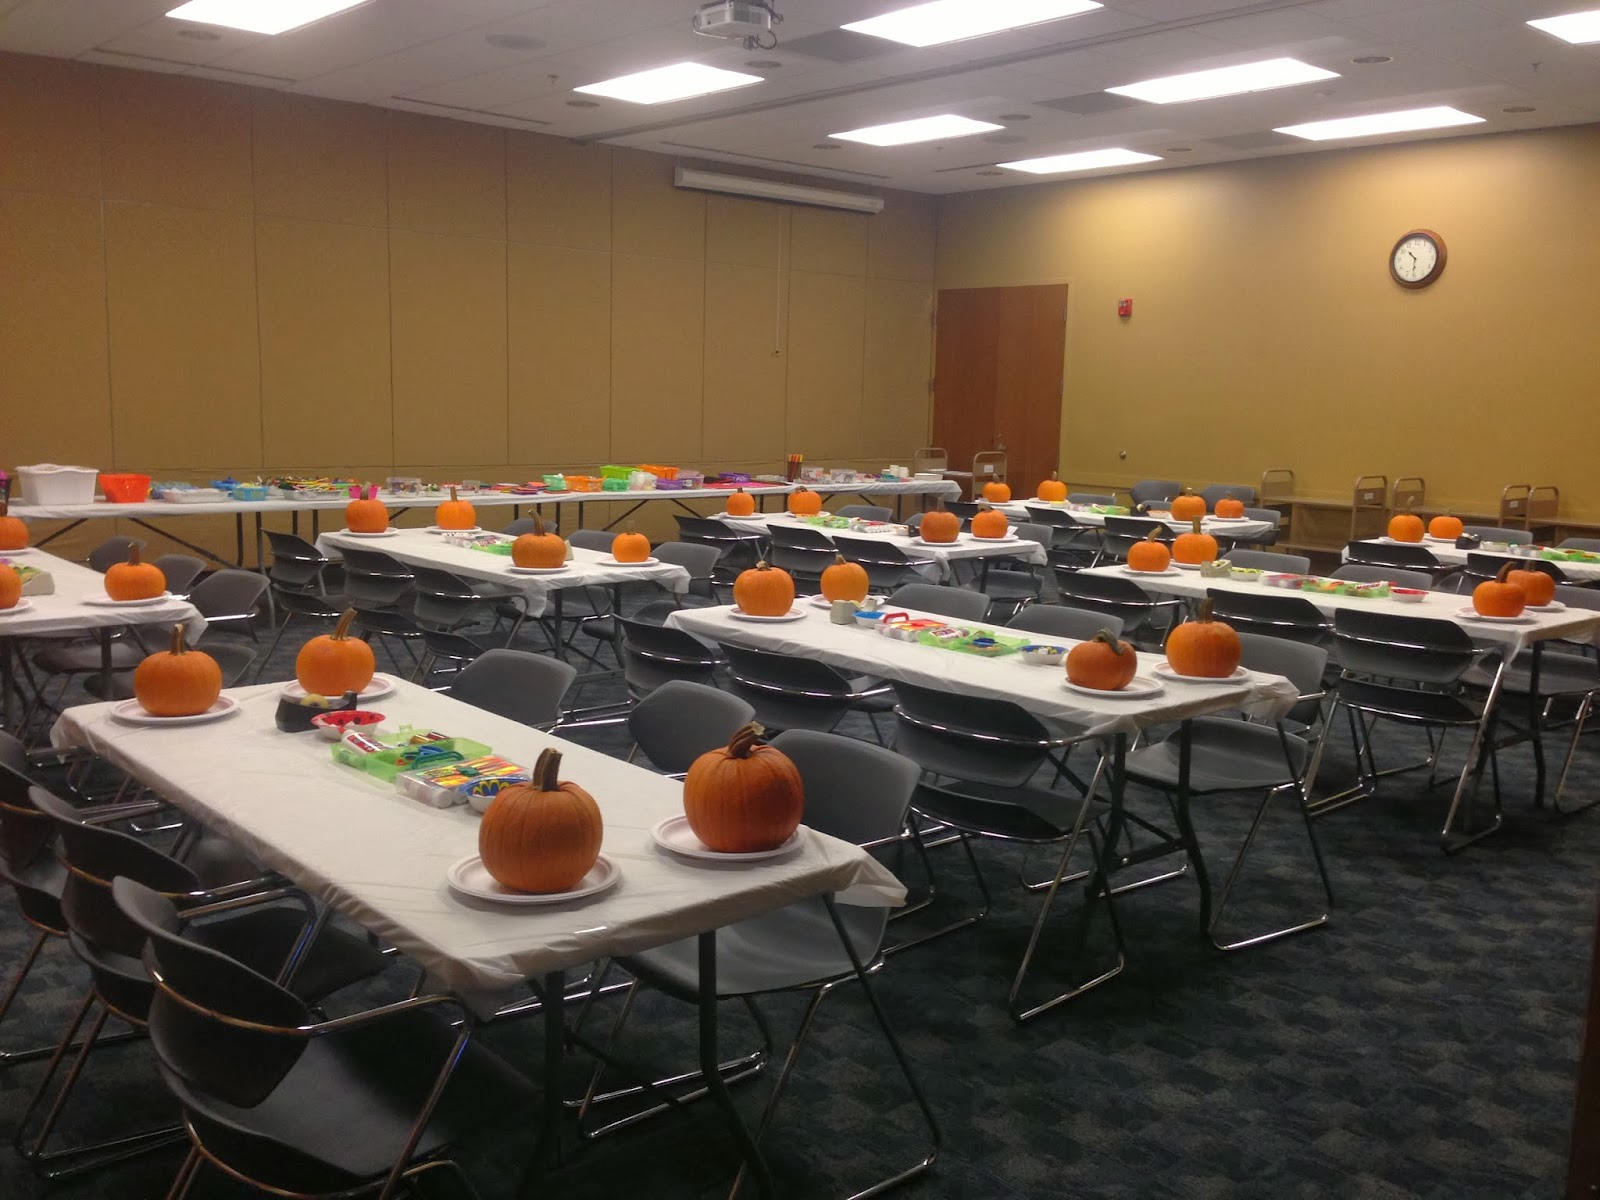 & Pumpkin Decorating Program